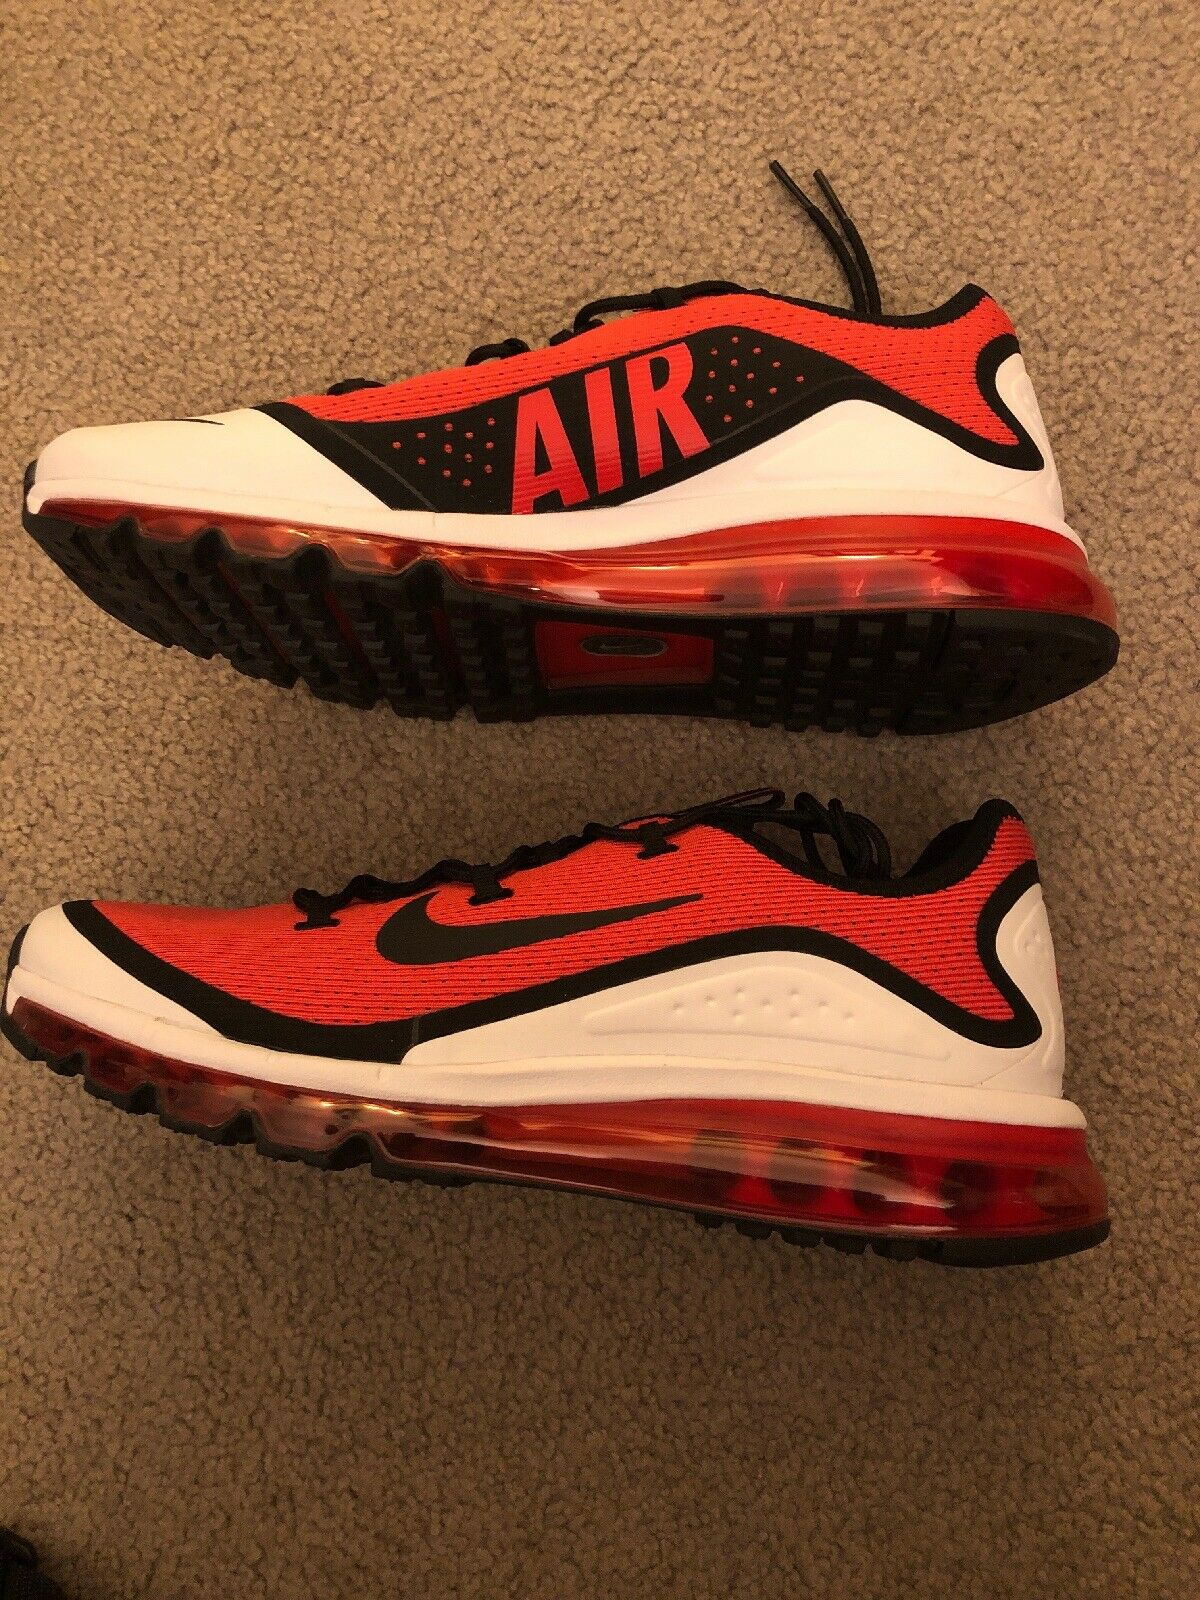 Nike Air Max More Habablack Red Black White AR1944 600  Men's Size 10.5